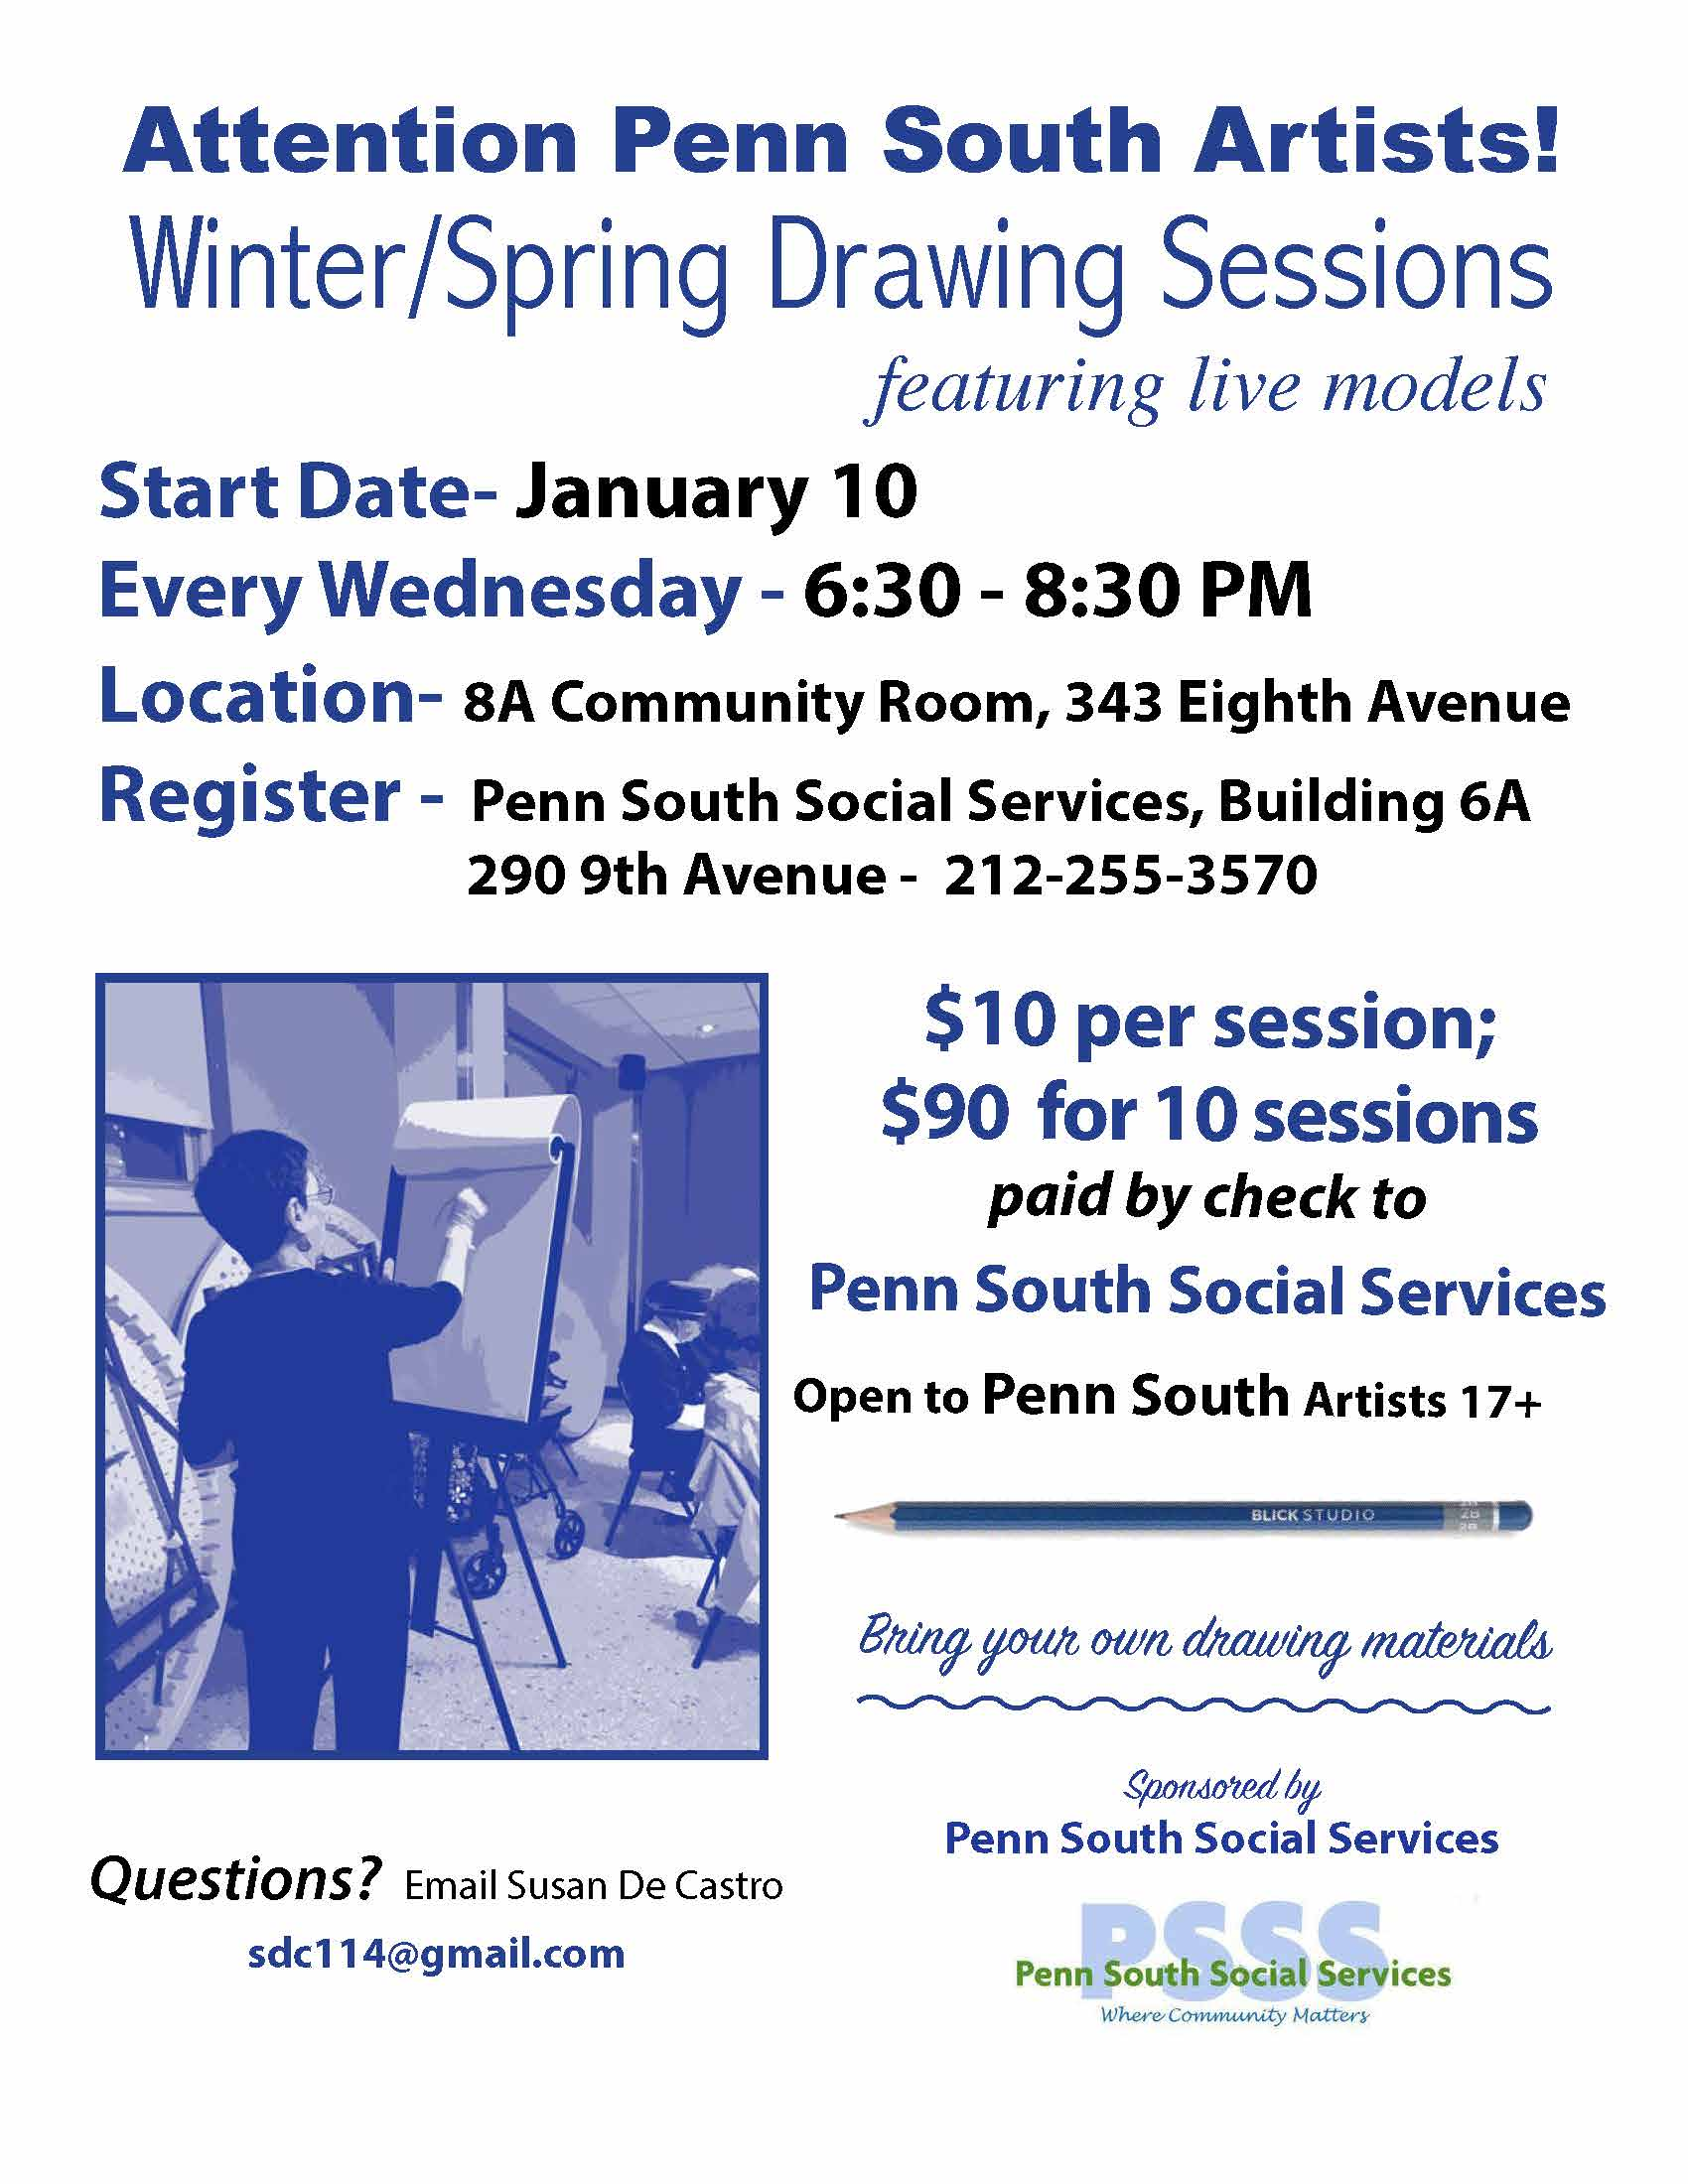 WINTER_SPRING 2018 DRAWING SESSIONS FLYER.jpg